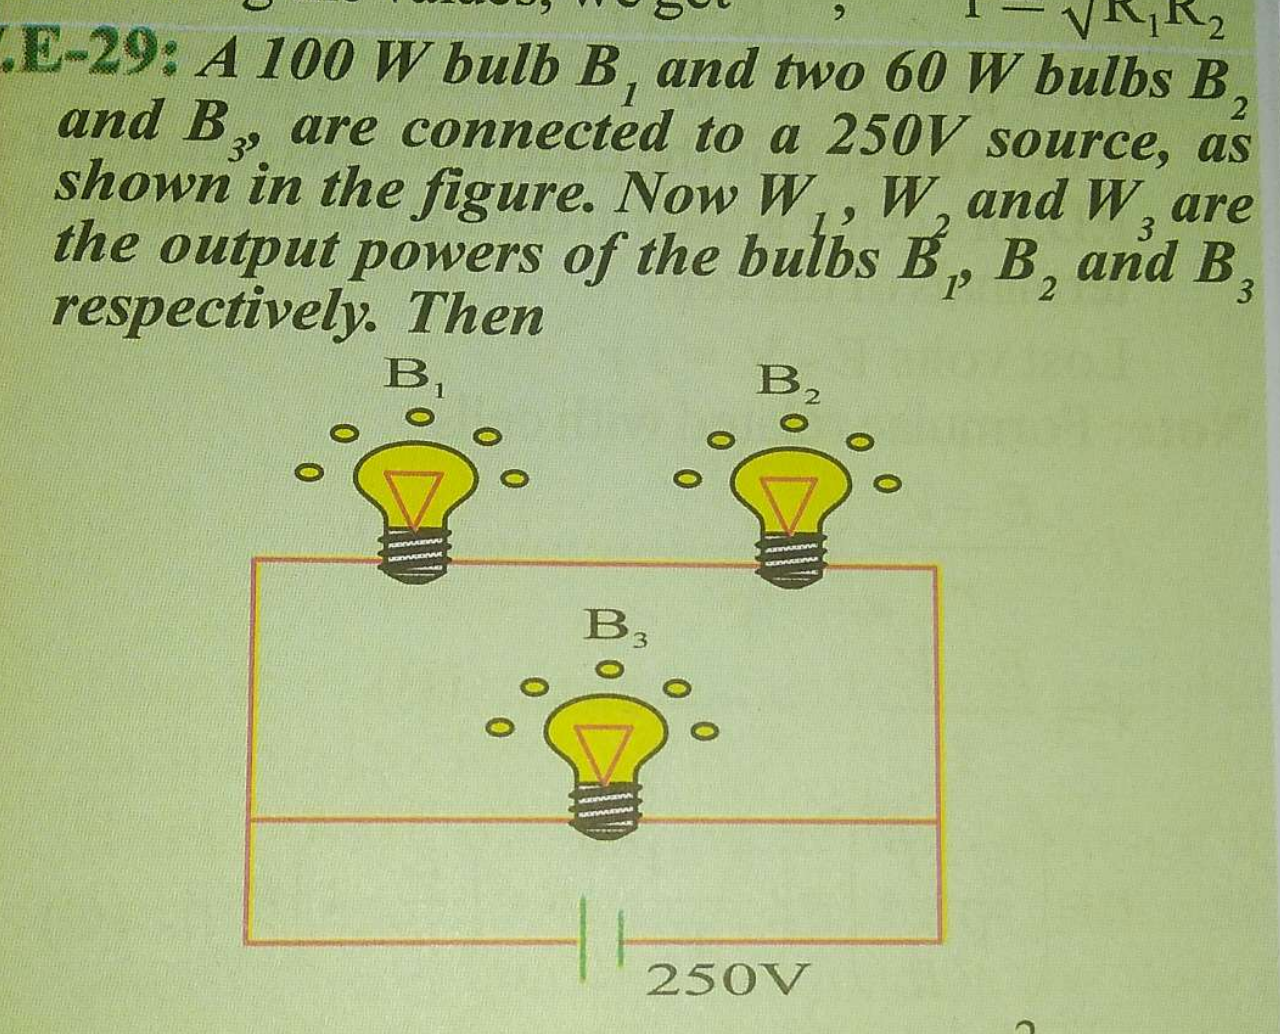 A 100 W bulb B_1 and two 60W bulbs B_2 and B_3, are connected to a 250V source, as shown in the figure. Now W_1,W, and W_2 are the output powers of the bulbs B_1,B_2